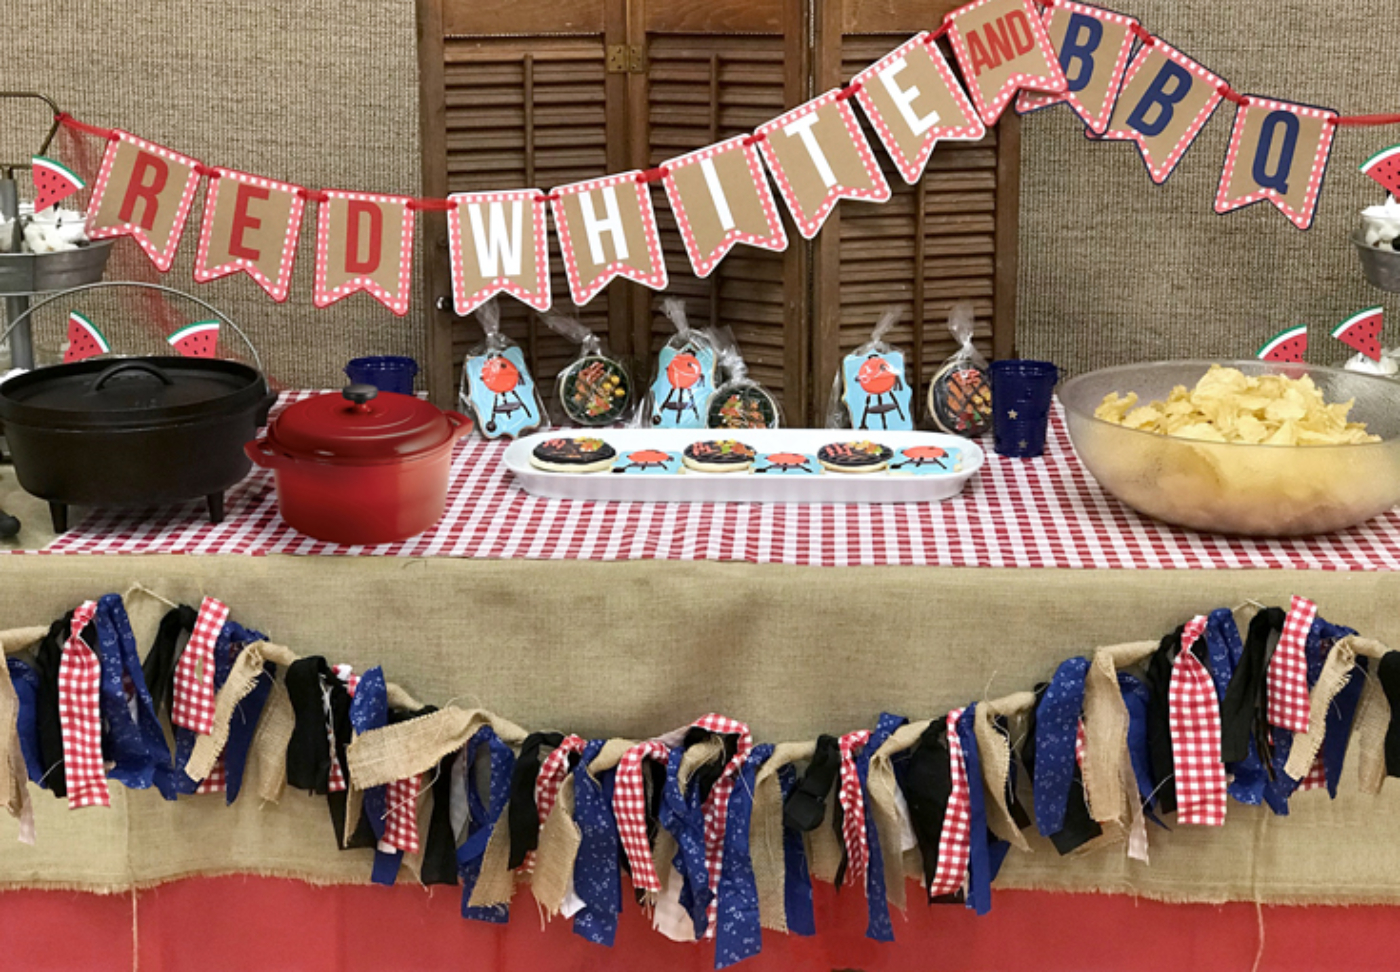 Love the Red, White, and BBQ banner as well as the tassel garlands. Custom BBQ cookies also available. They were amazing!! Red, white, and BBQ party | Halfpint Design - summer party, Memorial weekend bbq, 4th of July, Labor Day party, BBQ party, Oktoberfest, neighborhood grill, brat party